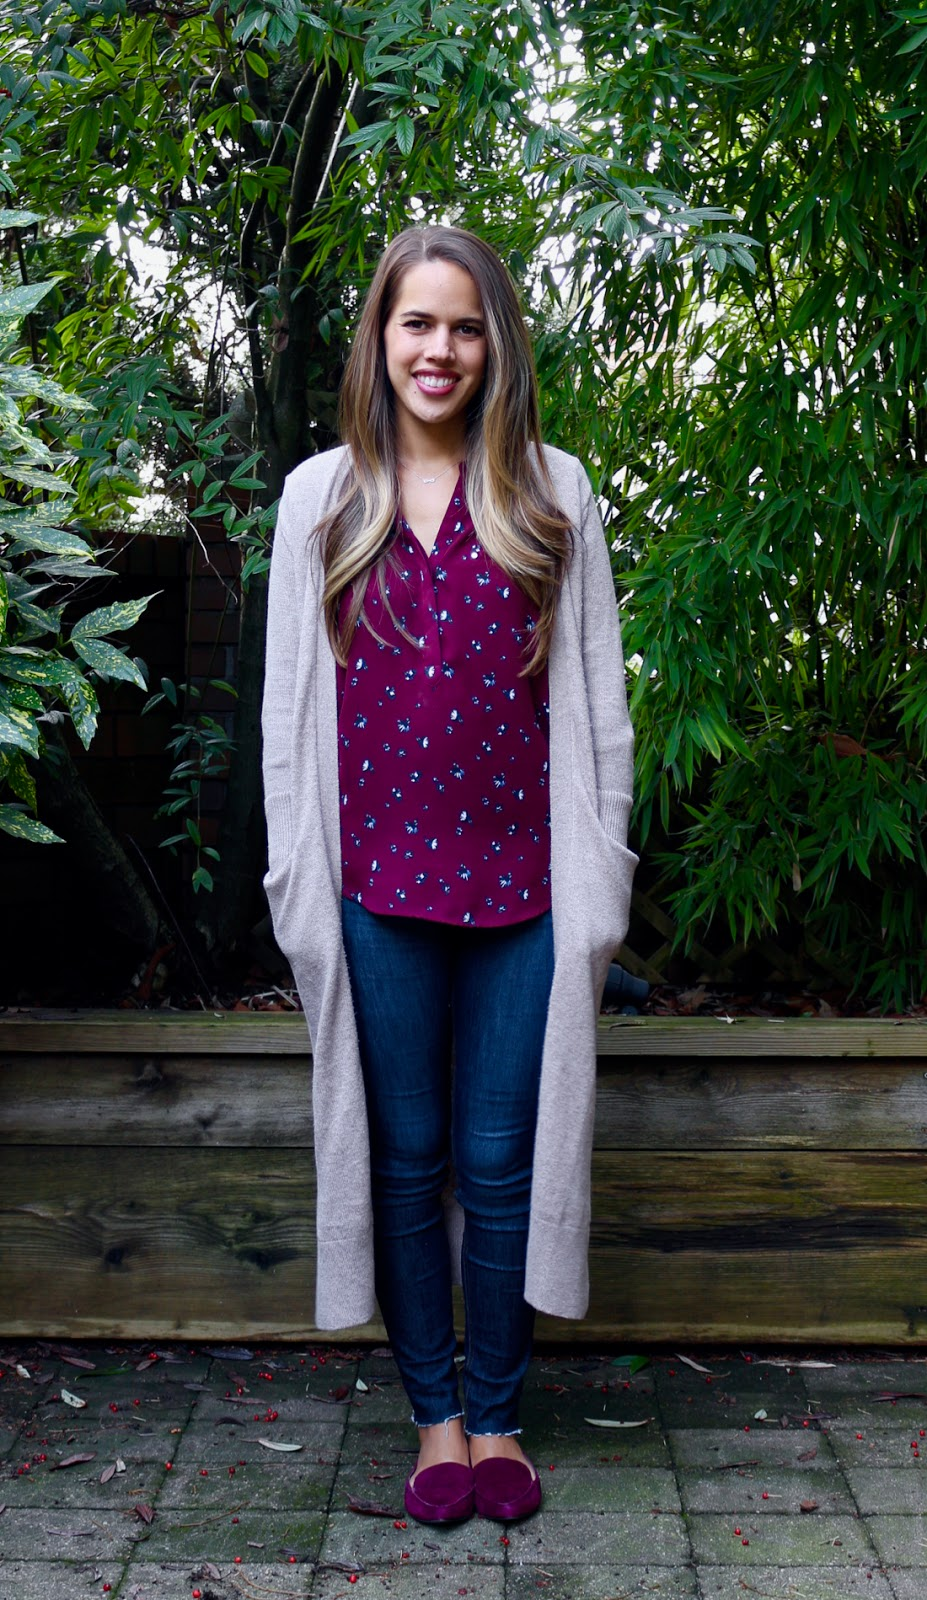 Jules in Flats - Long Open Front Cardigan with Burgundy Blouse + Loafers (Business Casual Winter Workwear on a Budget)